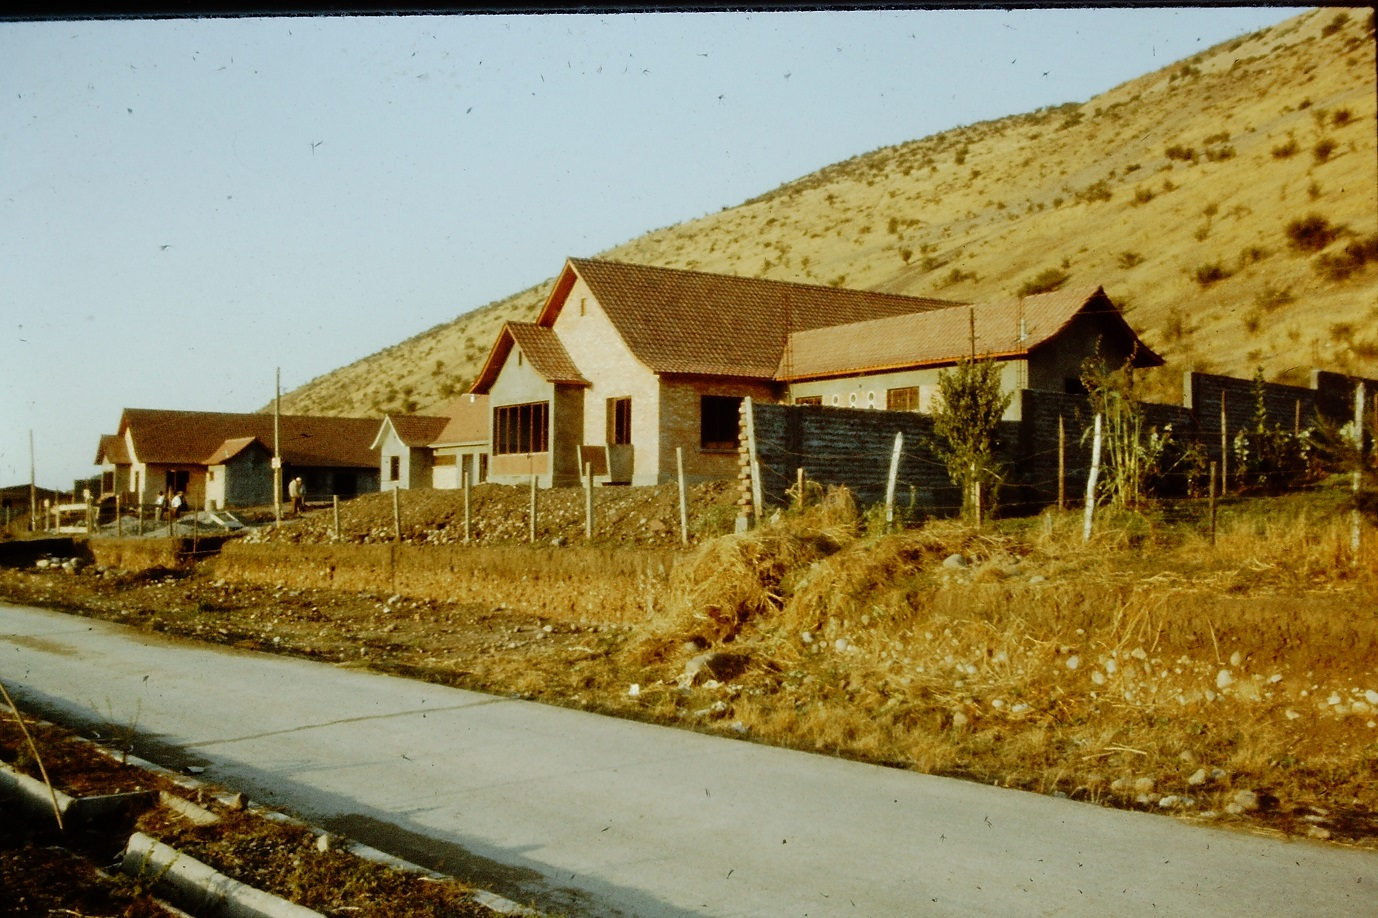 Enterreno - Fotos históricas de chile - fotos antiguas de Chile - Barrios del cerro Calán en los 60s